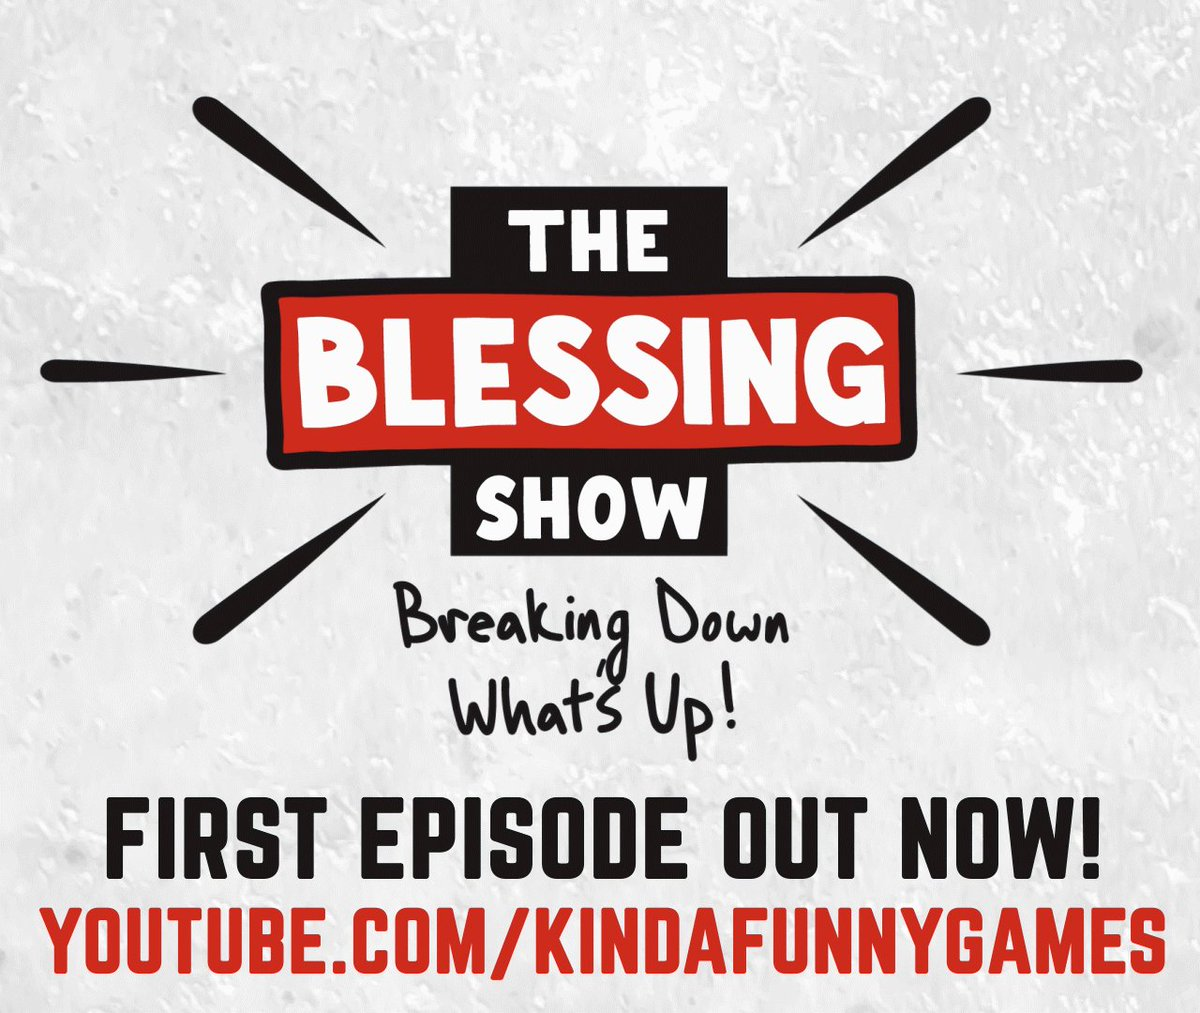 The first episode of The Blessing Show is now LIVE on YouTube!